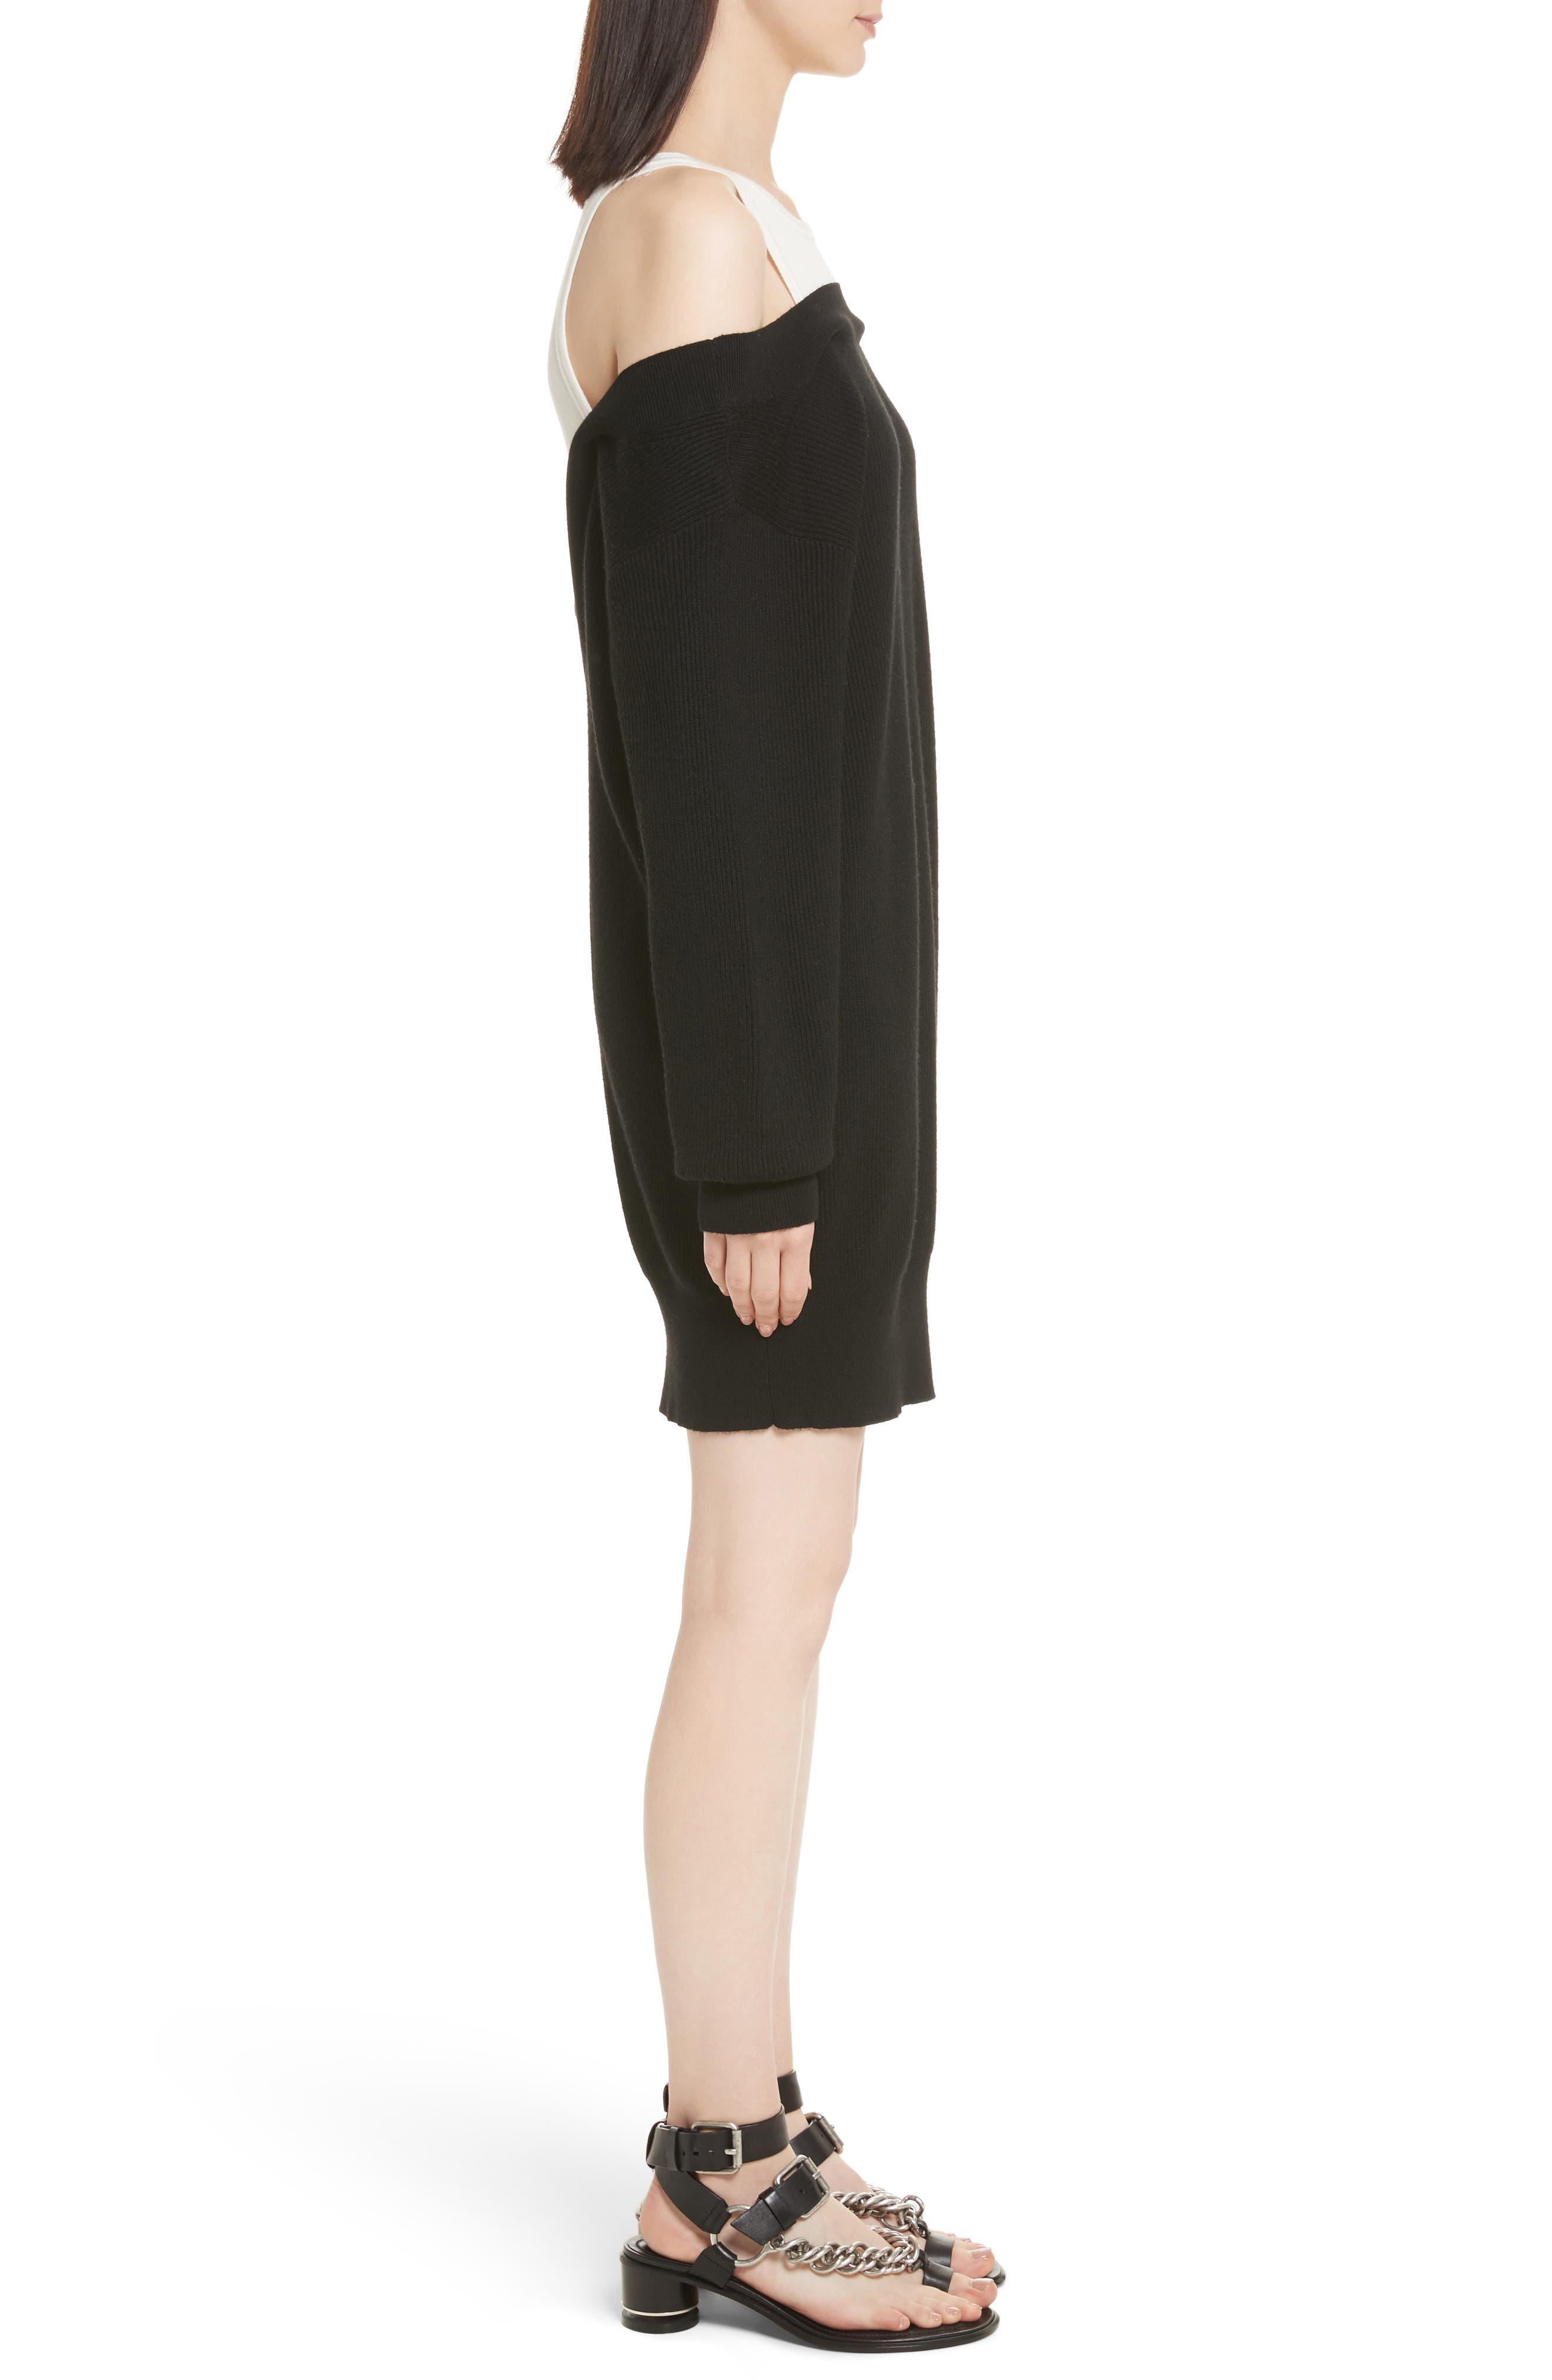 T by Alexander Wang Bi-Layer Knit Dress with Inner Tank,                             Alternate thumbnail 3, color,                             018